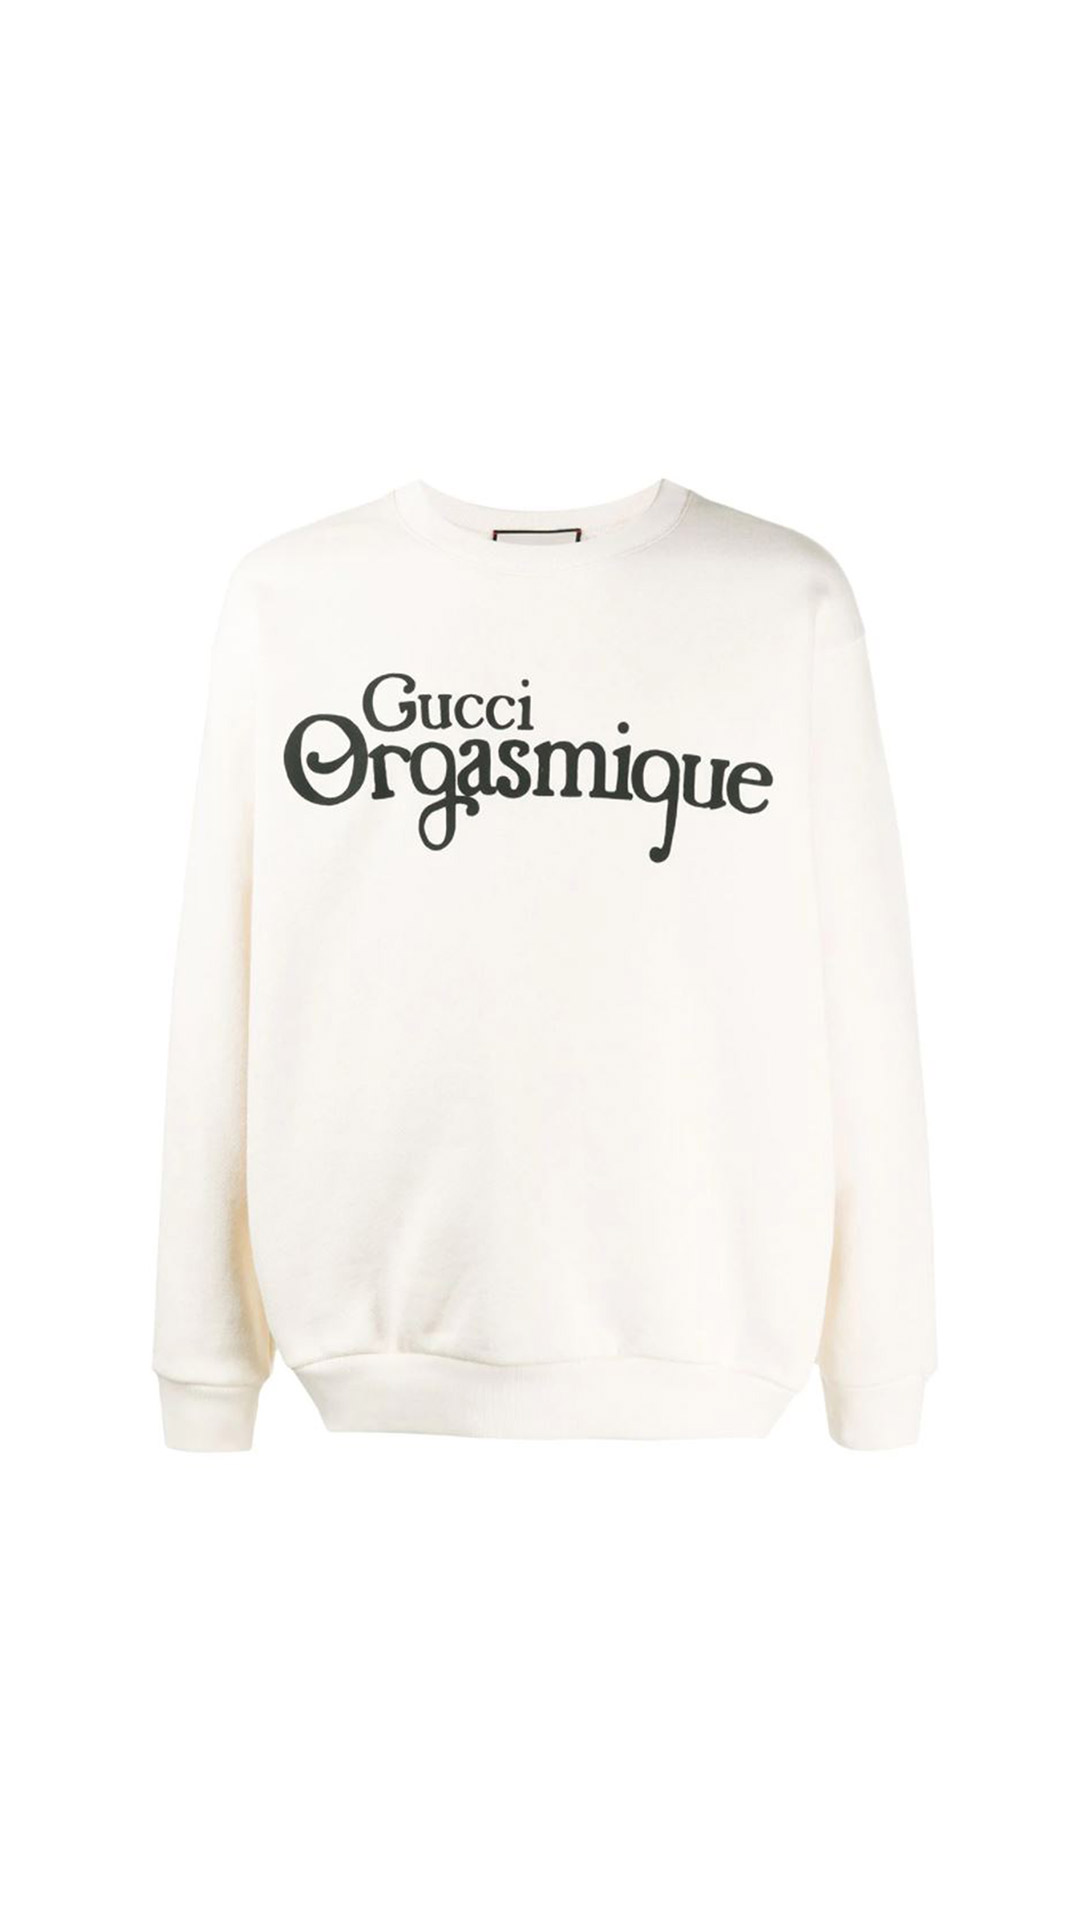 GUCCI Orgasmique Sweatshirt